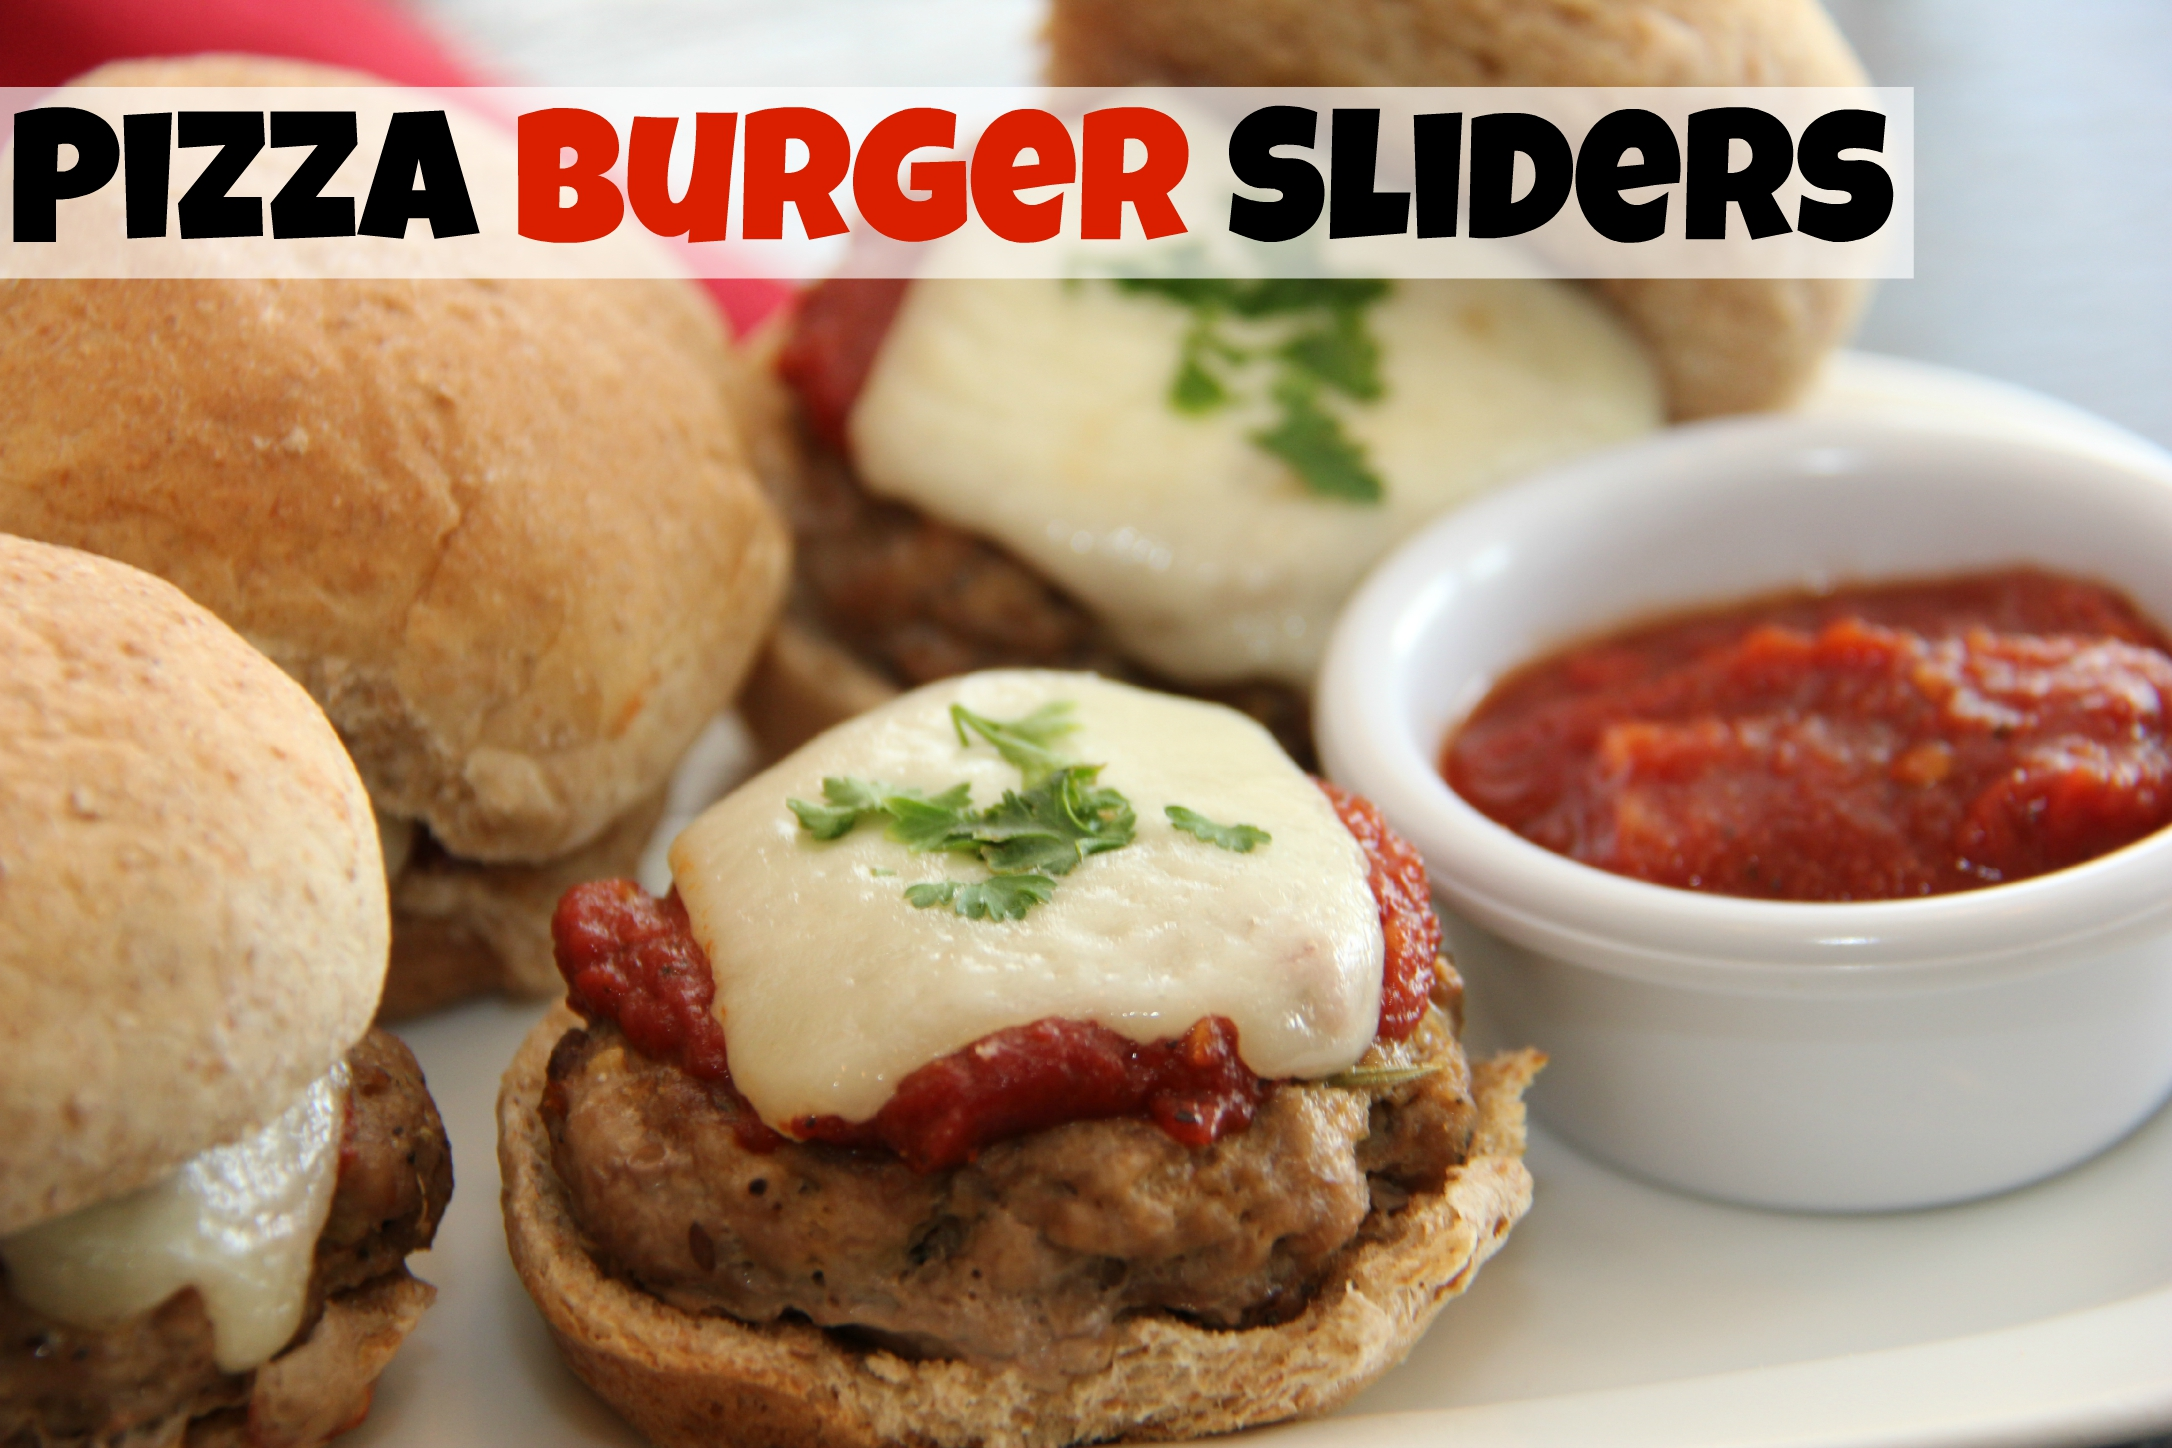 Pizza Burger Sliders Recipe Healthy Ideas For Kids